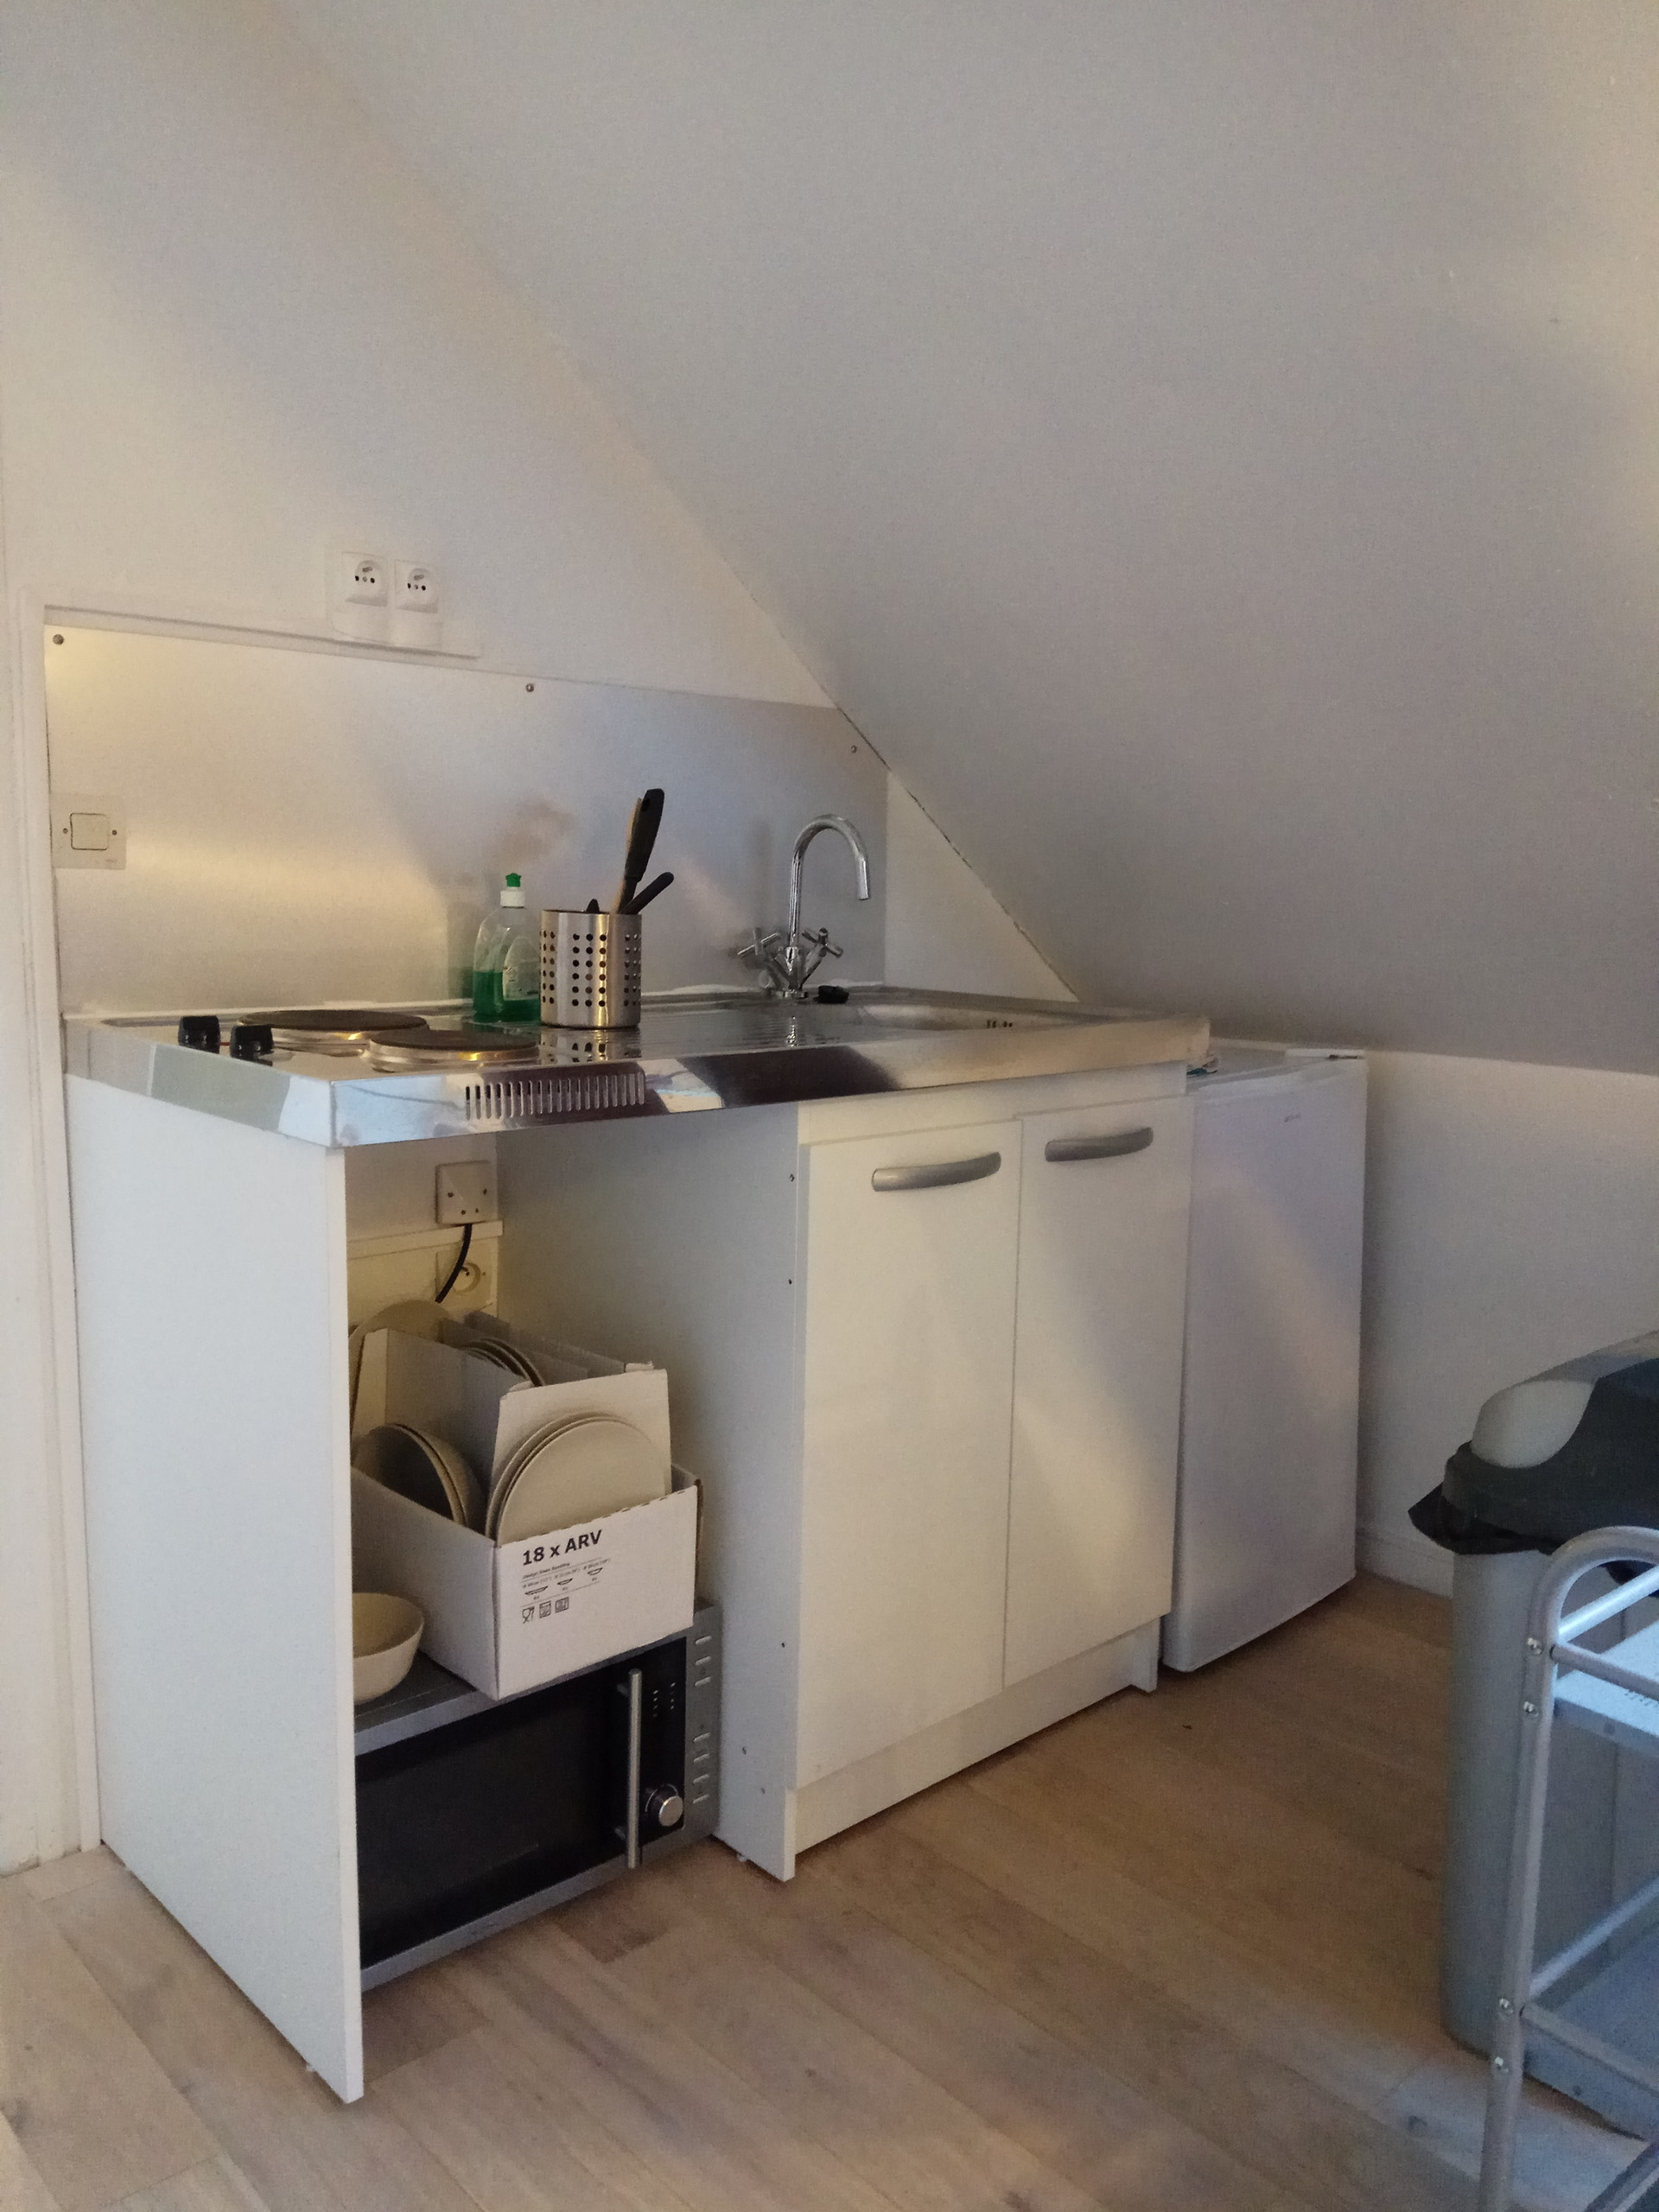 Astounding Student S Studio Available To Rent In Caen With Storage Area